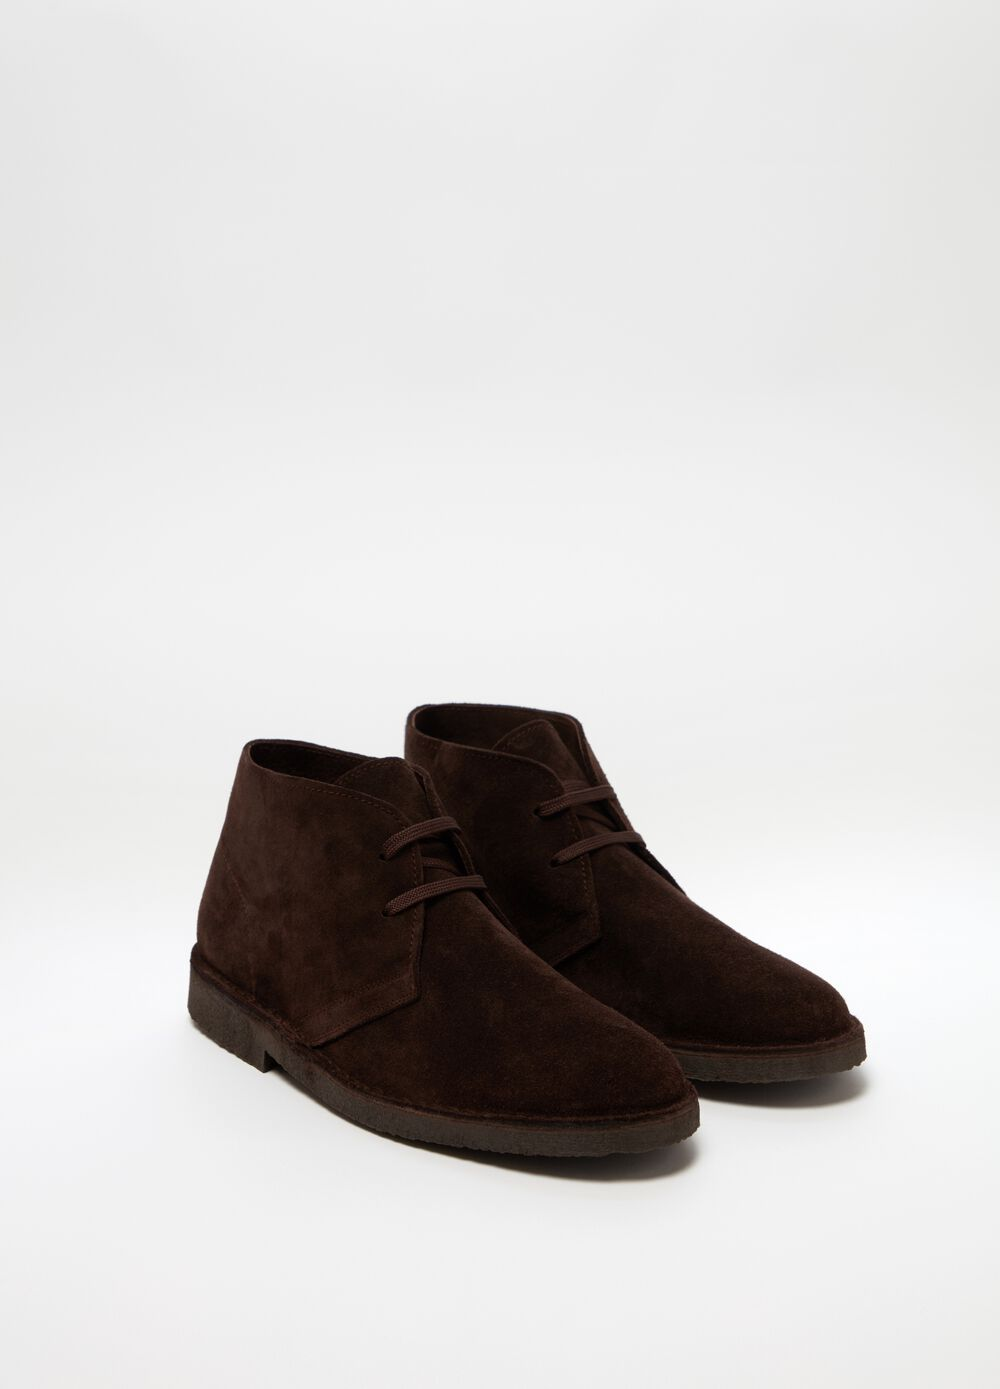 Genuine leather desert boot with laces